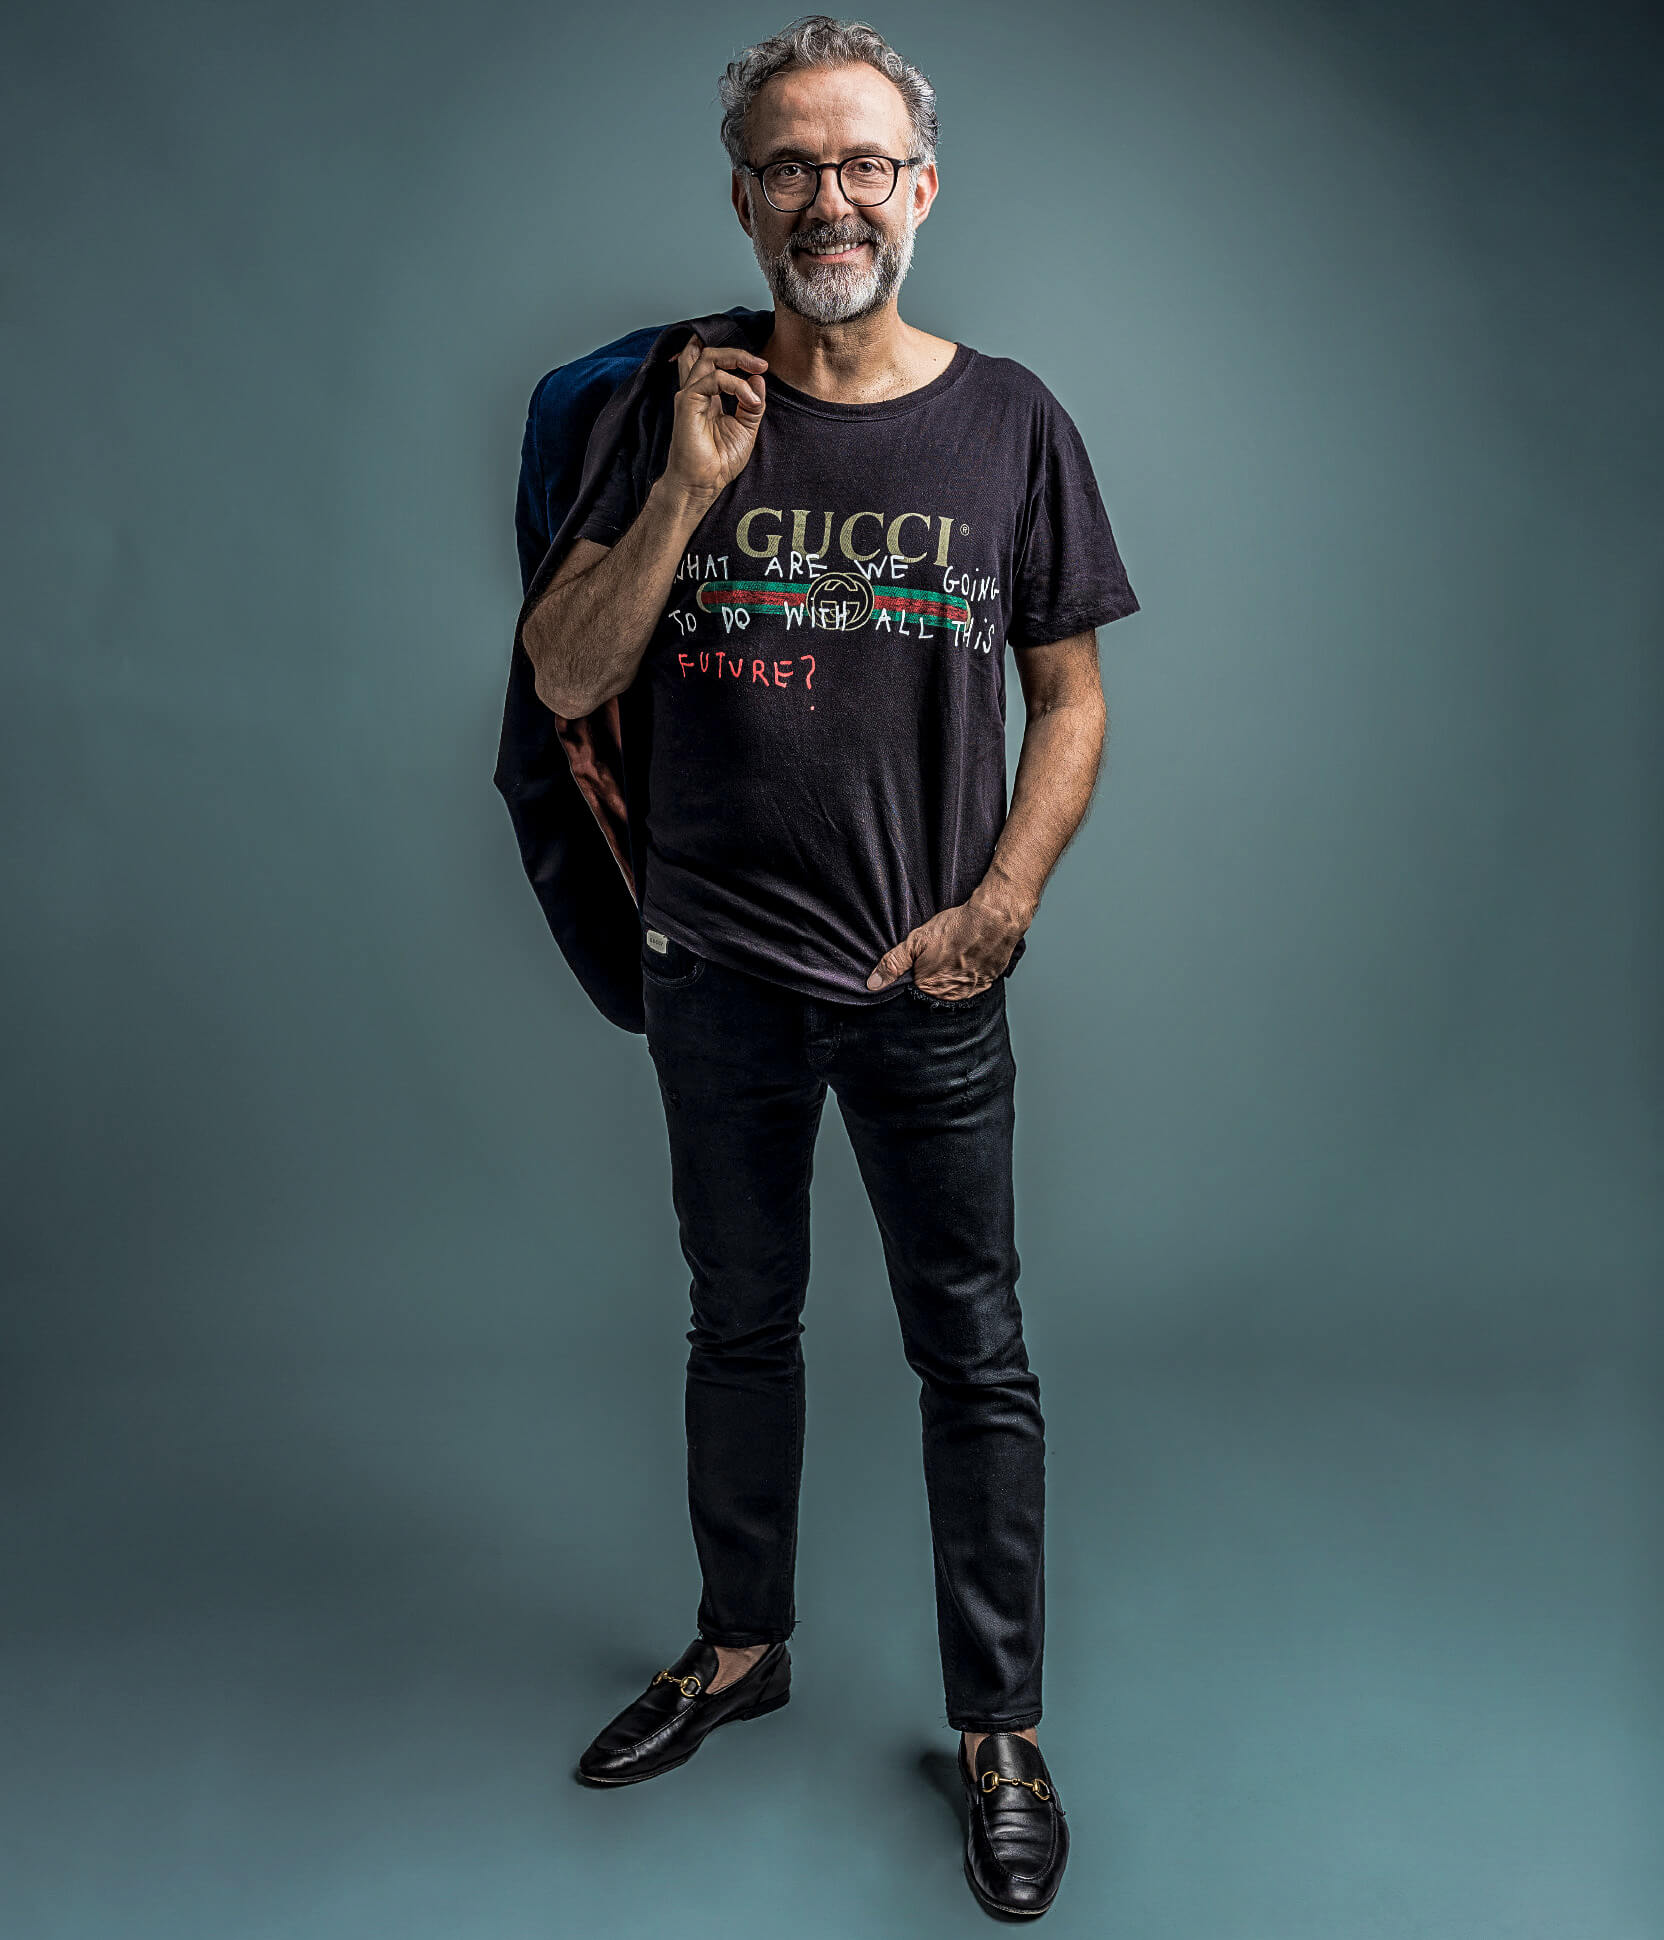 Massimo Bottura, status chef and ambassador of the Italian luxury culinary craft, who is also the founder of a social revolutionary soup kitchen